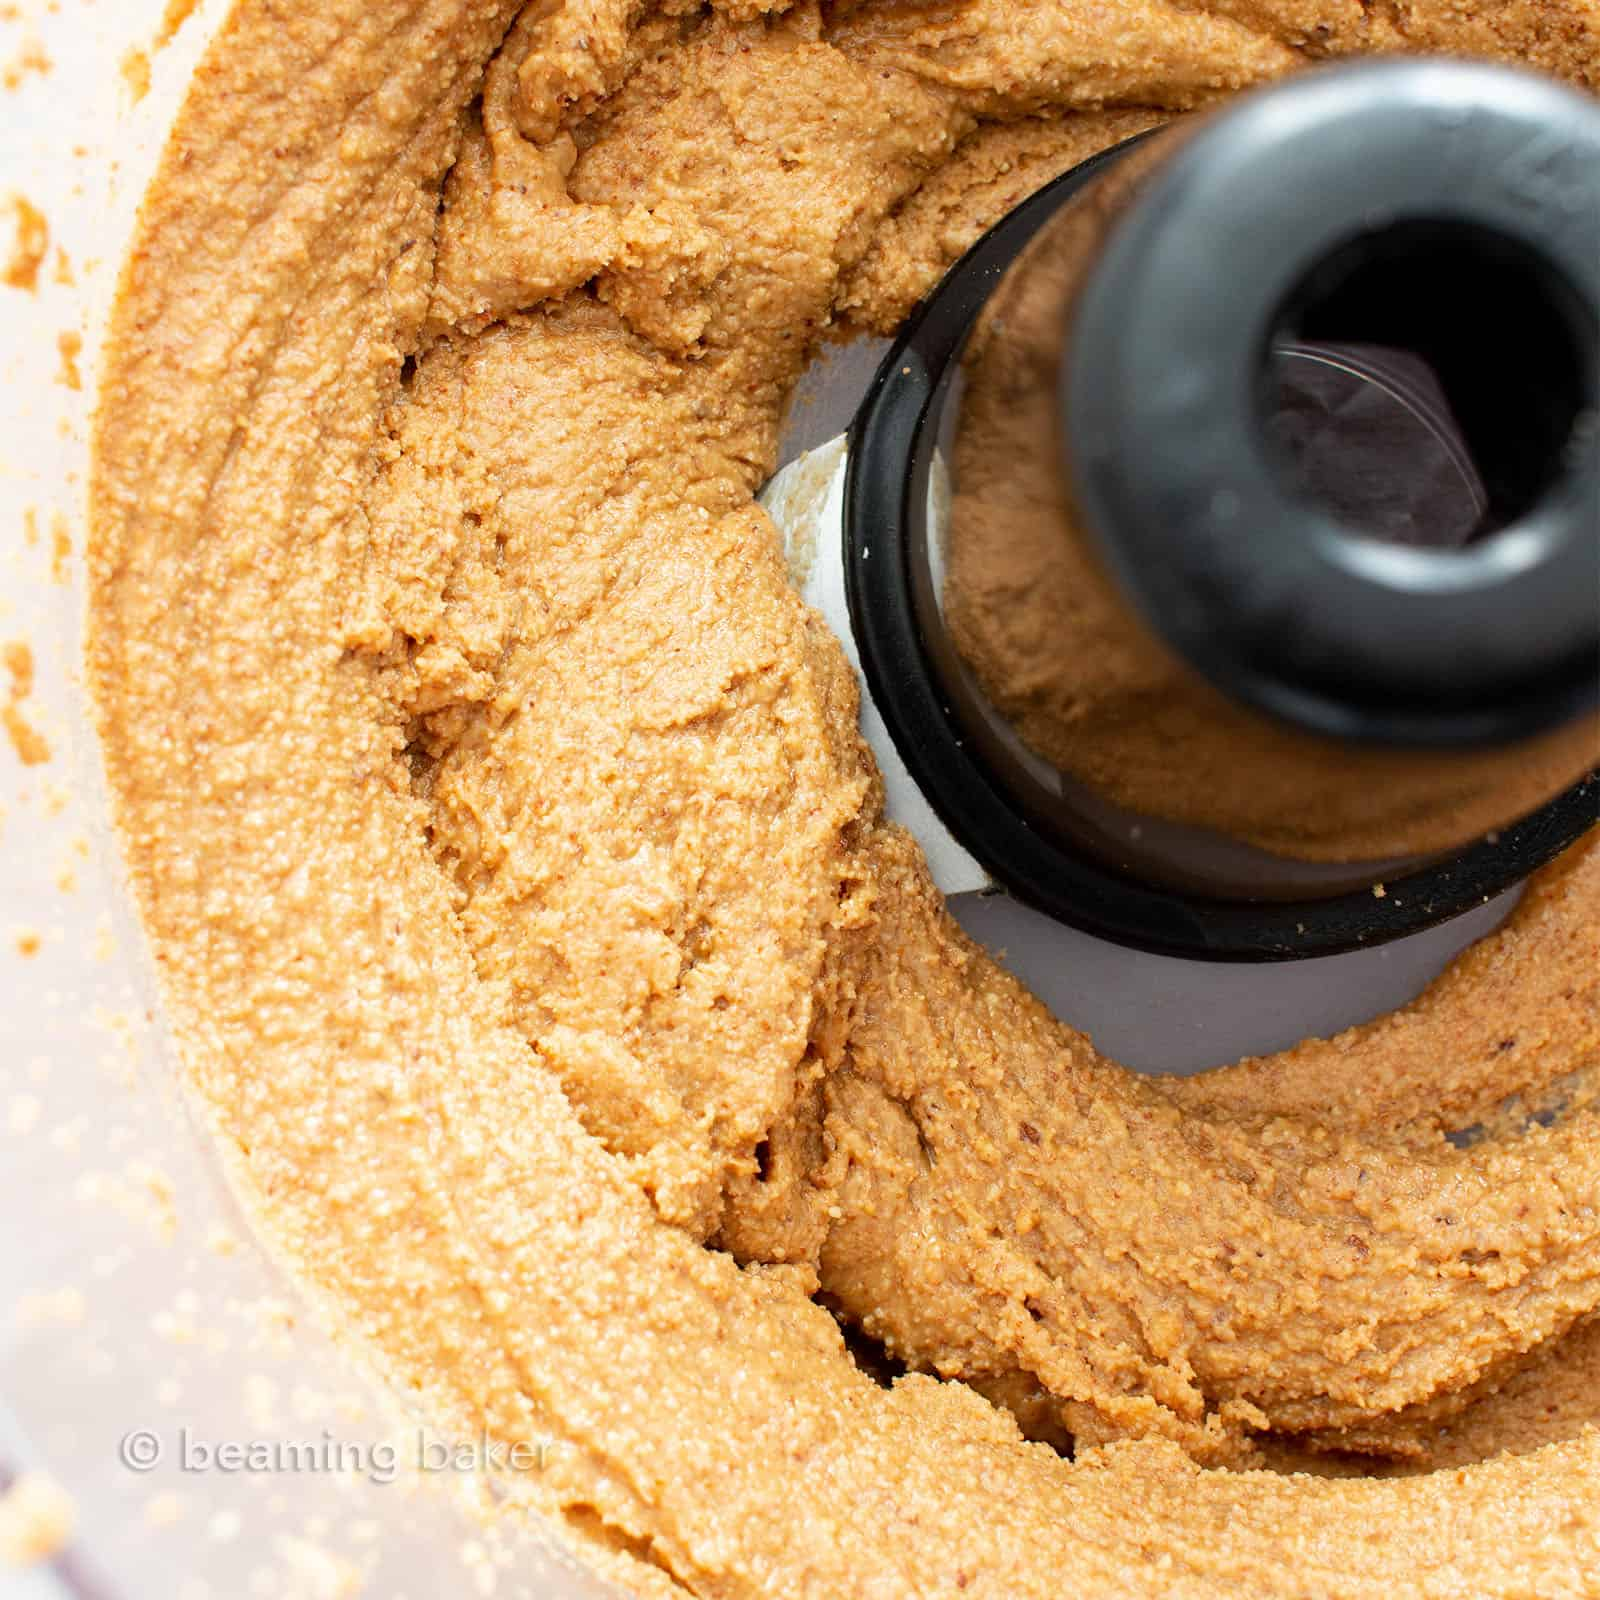 How to Make Almond Butter: learn how to make almond butter with just 1 ingredient and a few minutes! The best homemade almond butter—creamy, simple and delicious. #AlmondButter #Homemade #Recipe | Recipe at BeamingBaker.com